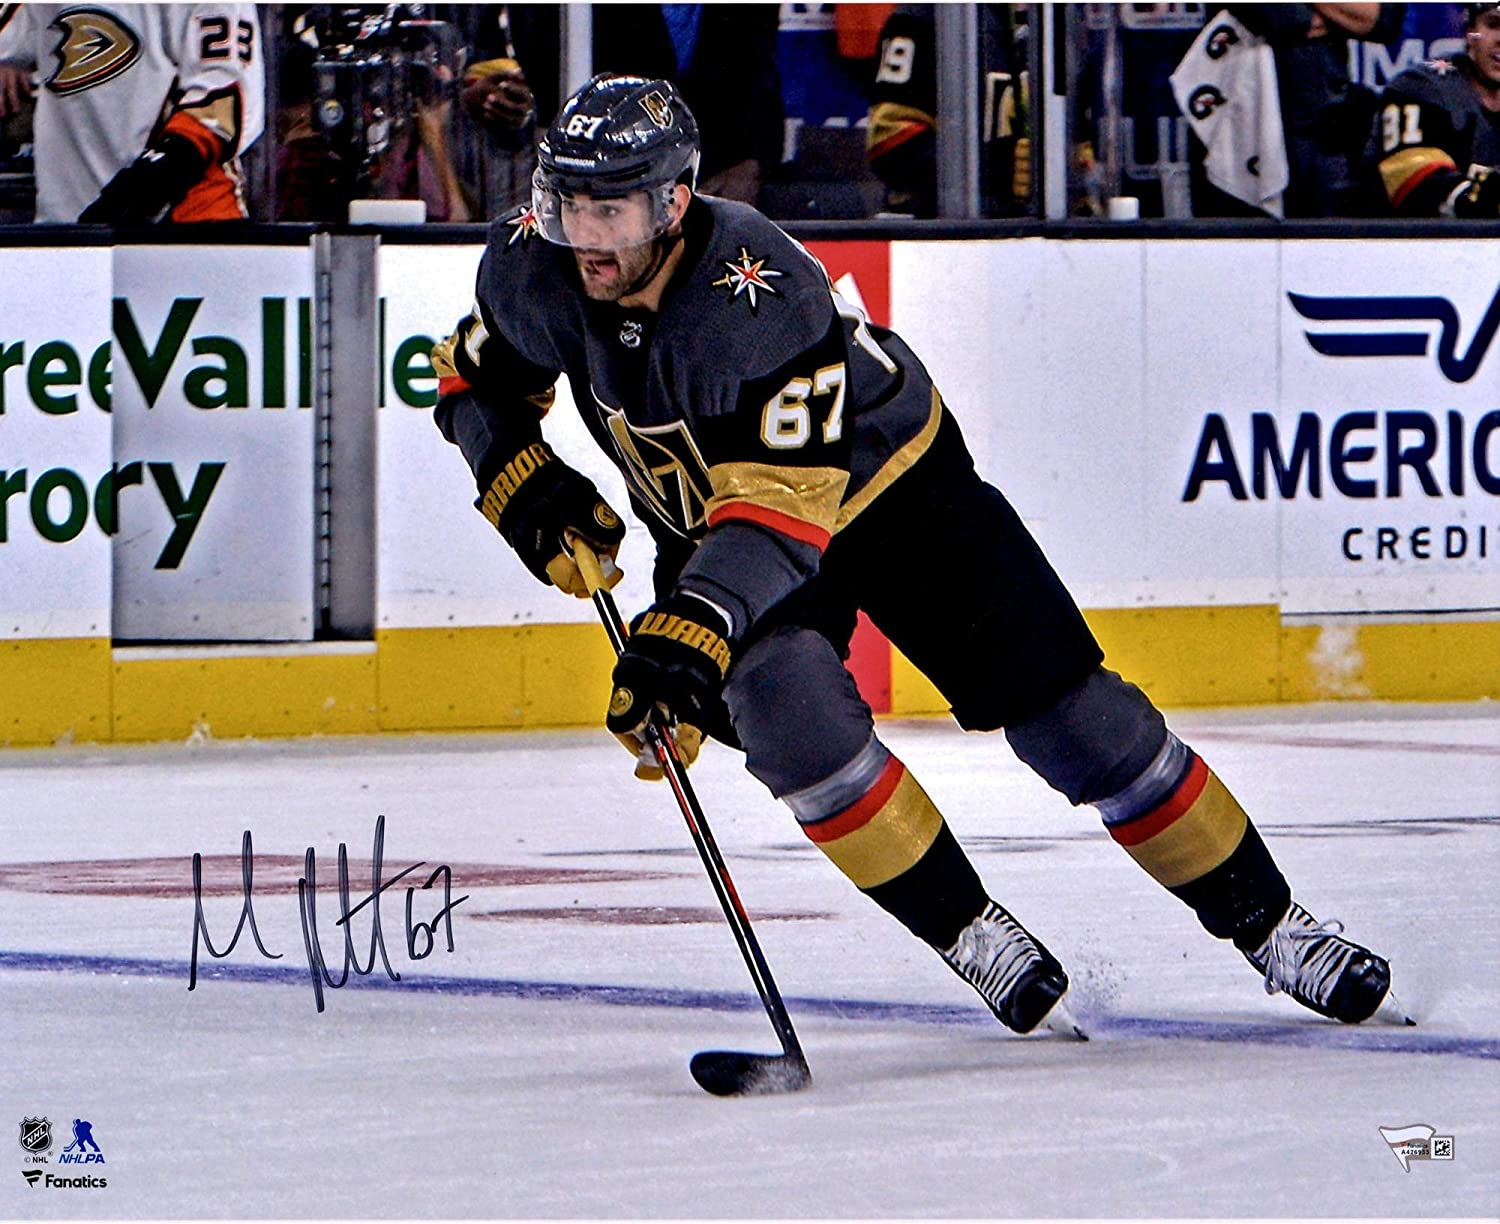 Max Pacioretty Vegas Golden Knights Autographed 16 x 20 Black Jersey Skating Photograph - Autographed NHL Photos